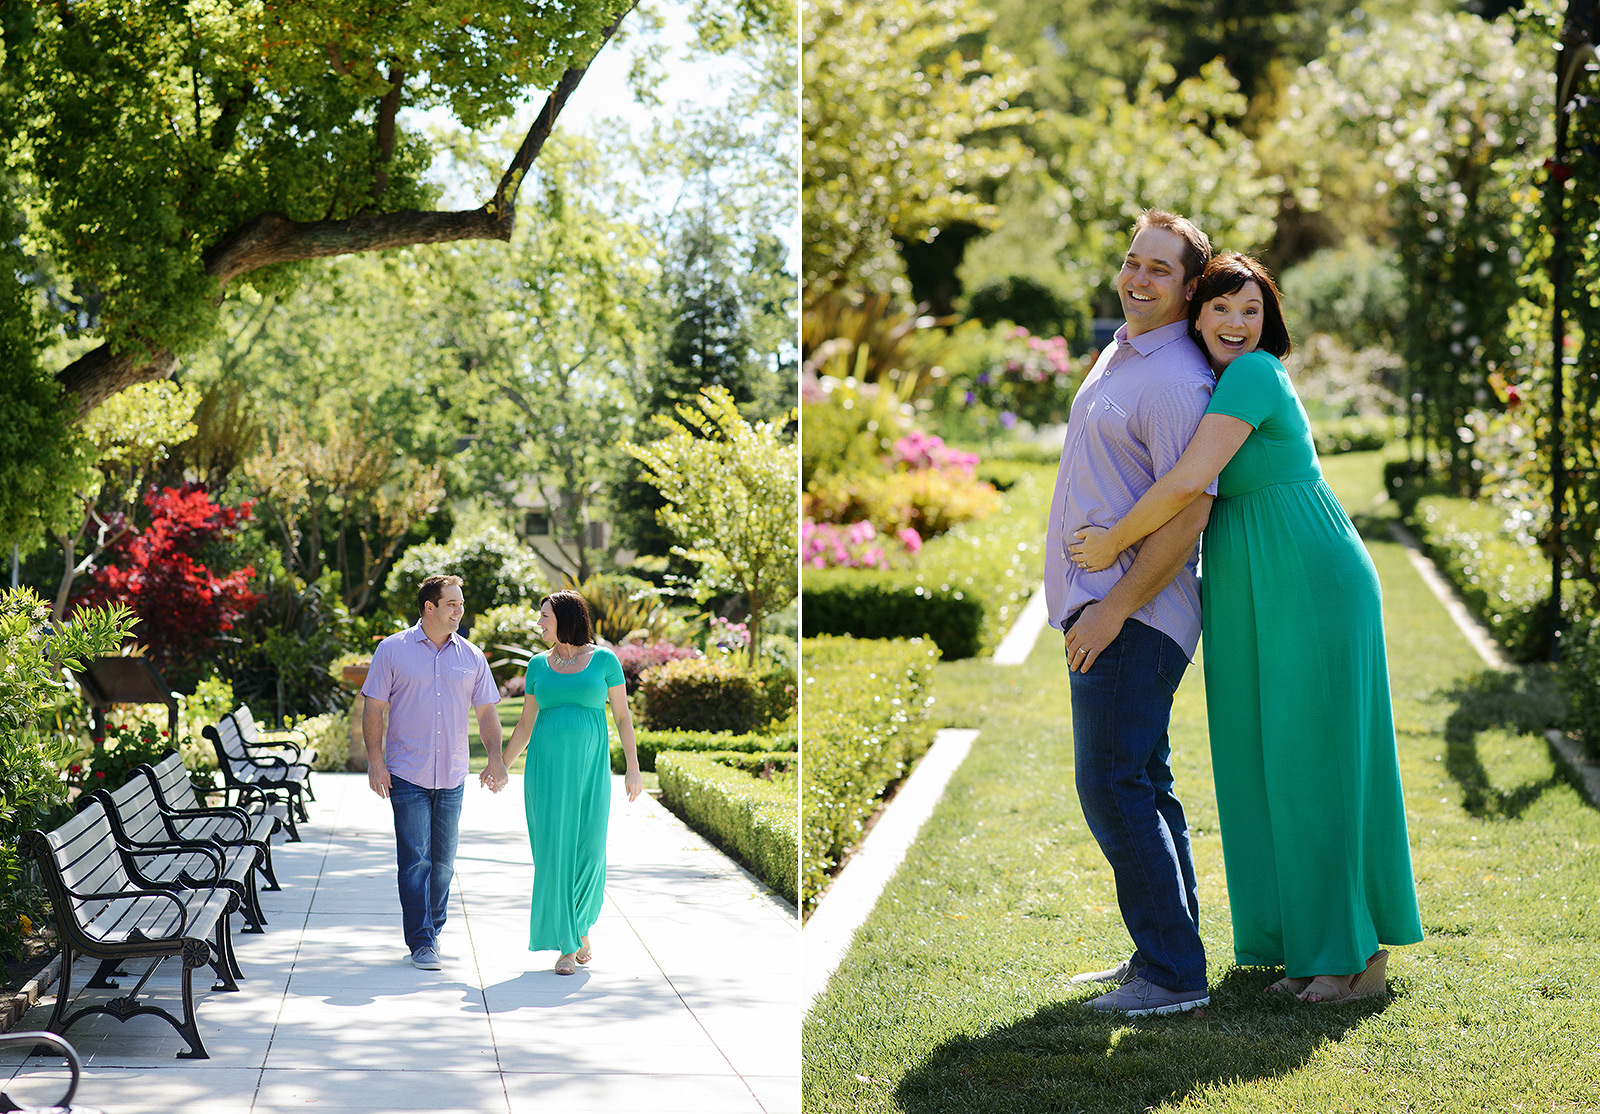 Pregnant couple walking and hugging outside on green lawn and background with trees